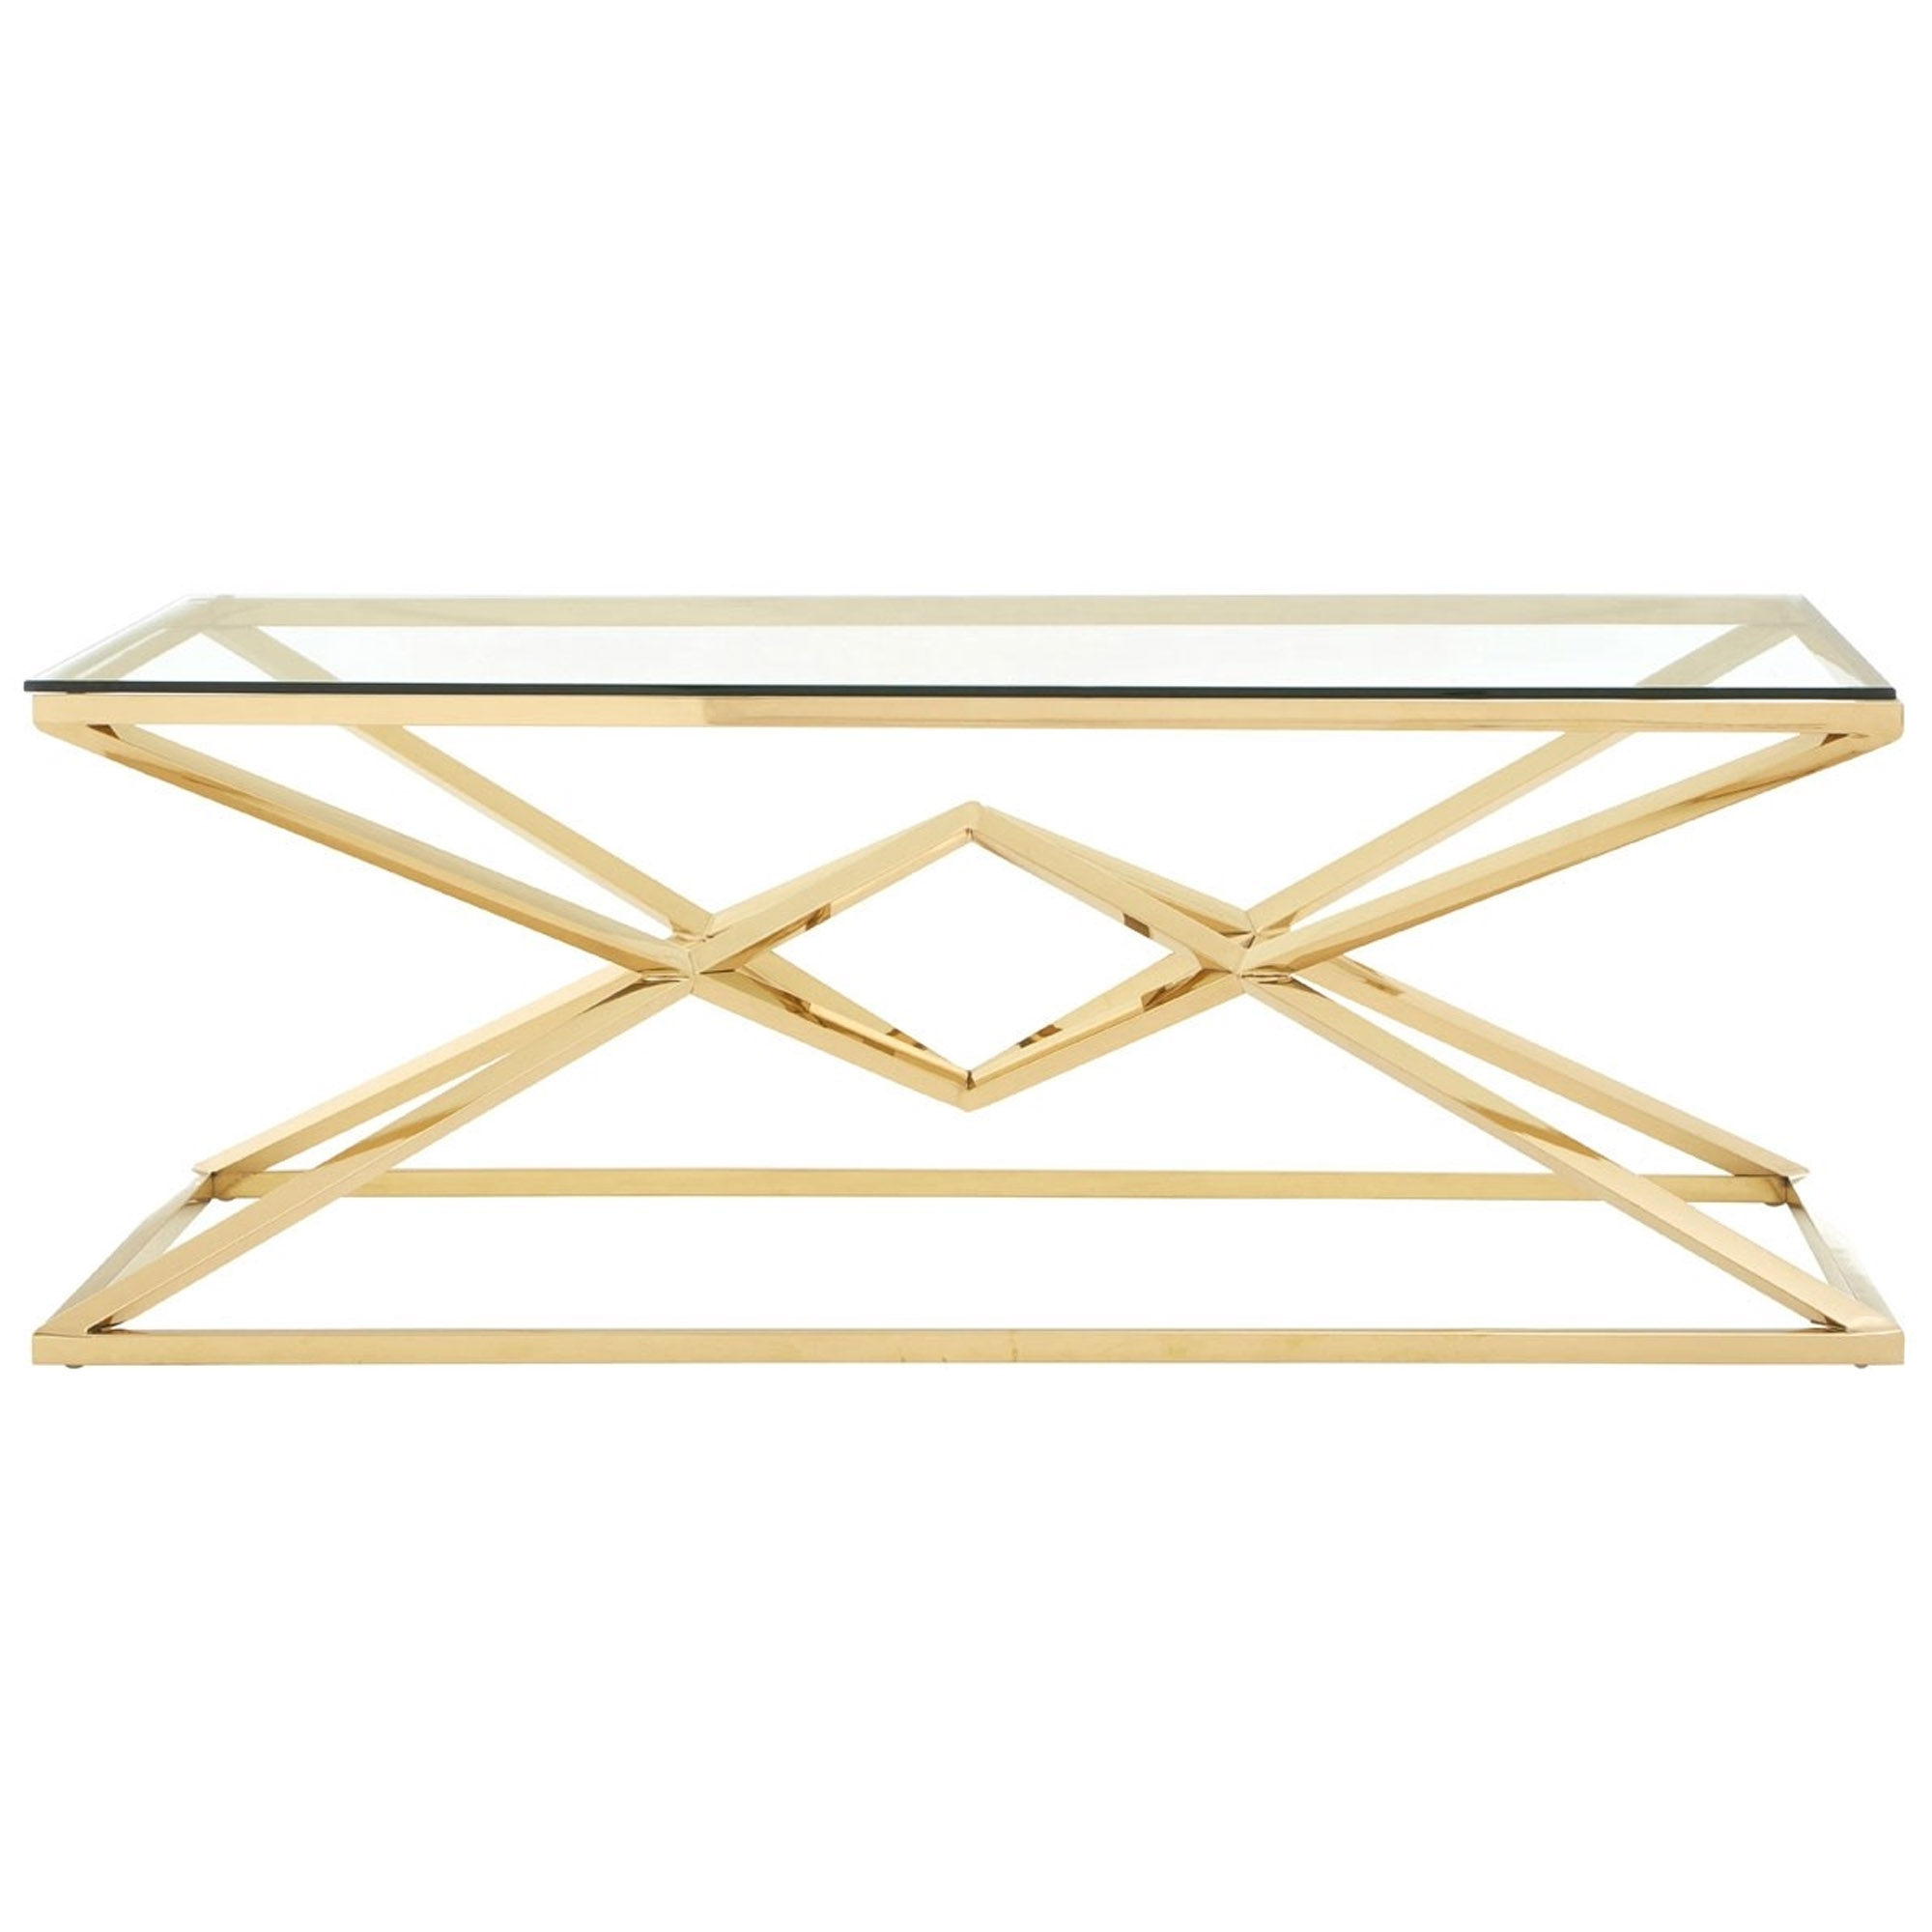 539a64365a6a6 Allure Gold Coffee Table | Contemporary Lounge Furniture